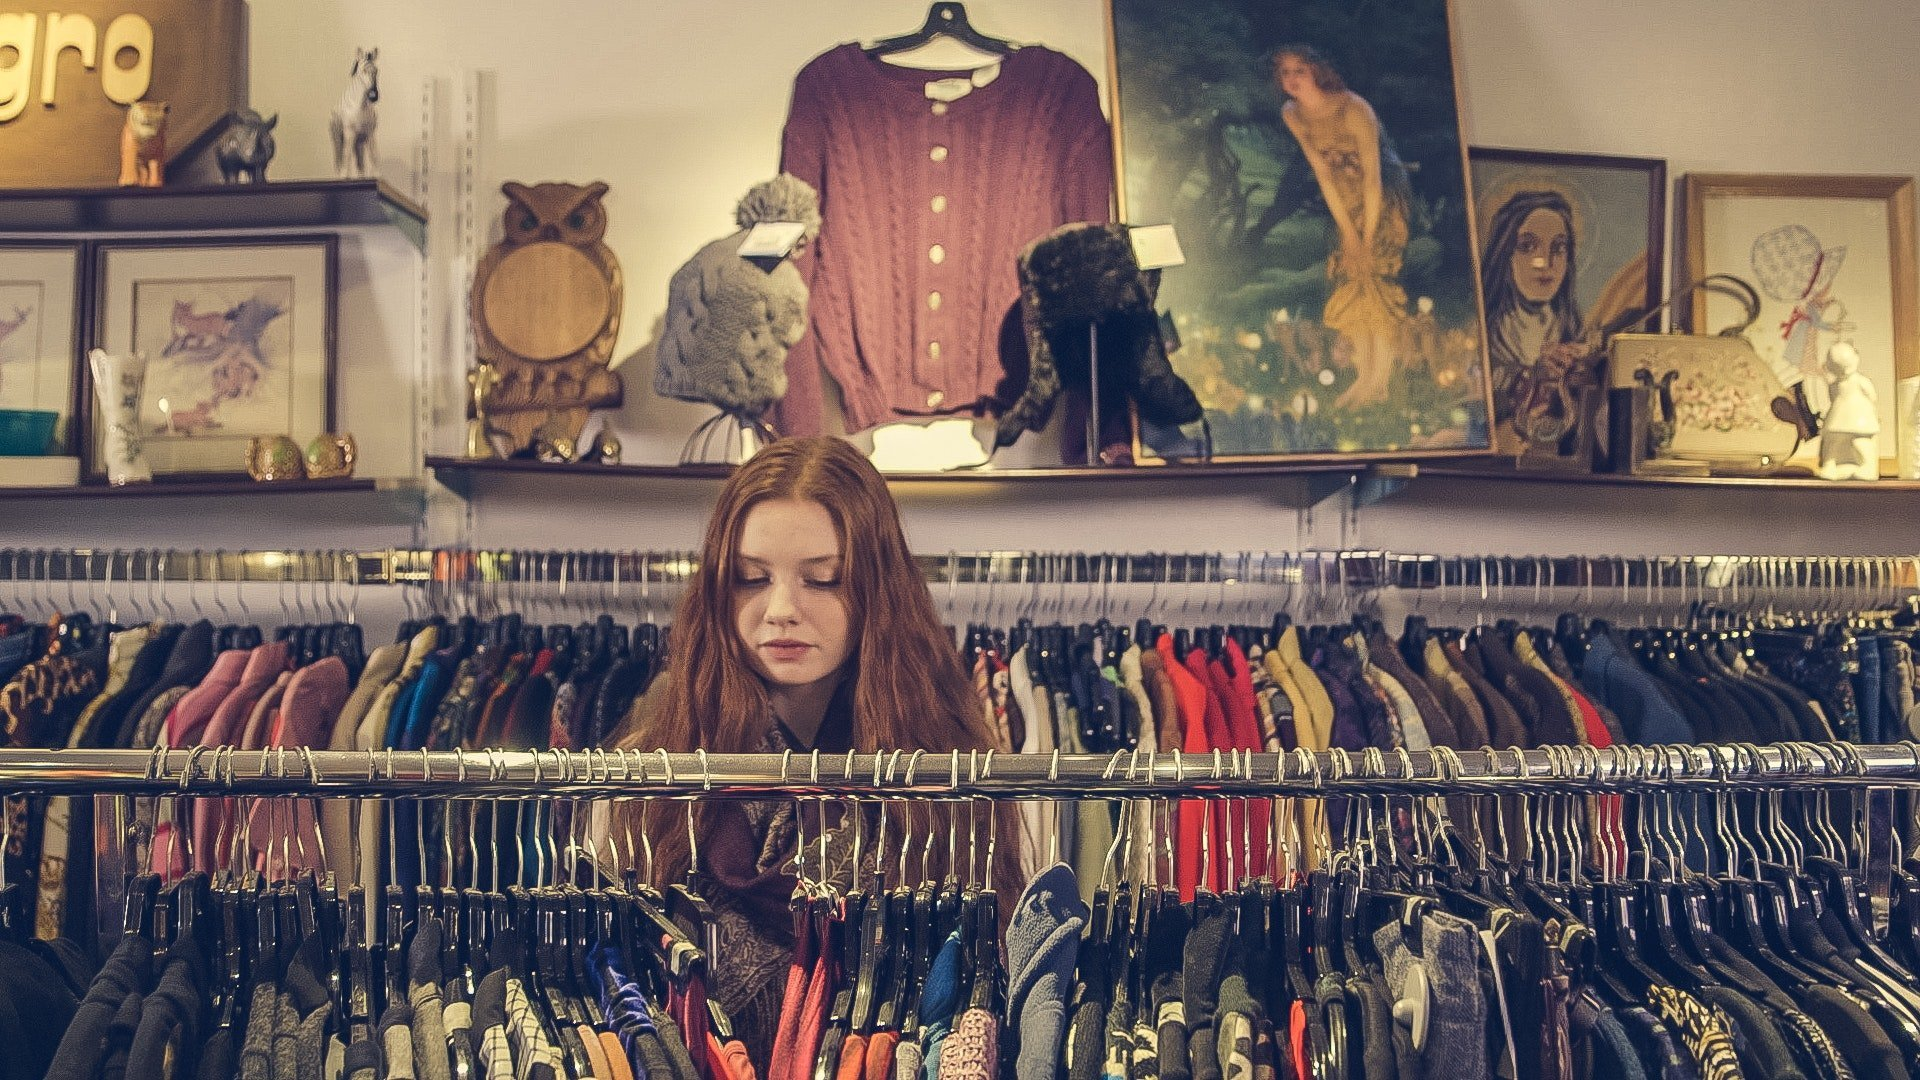 Woman shopping in a boutique store.   Source: pexels